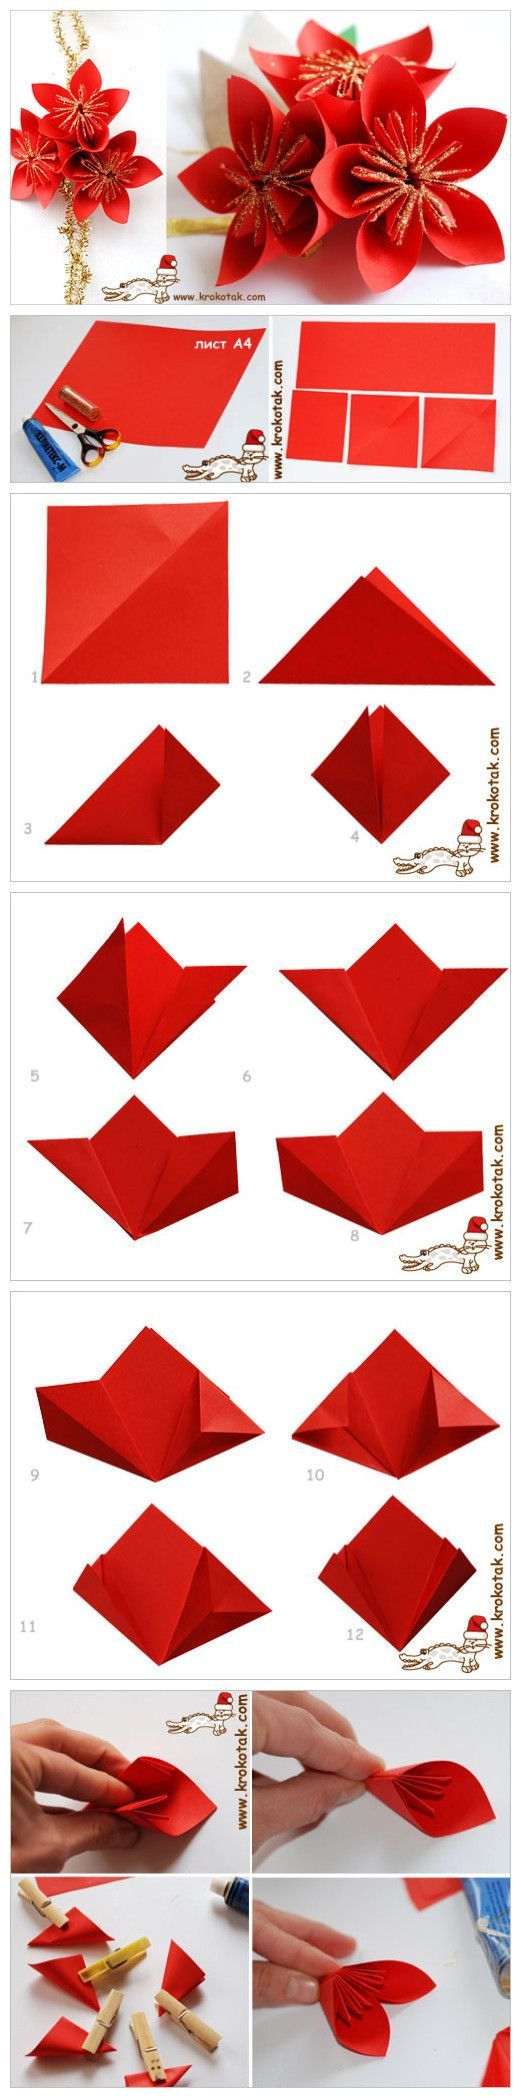 Paper Origami Flower More Origamiflowers Diy And Crafts